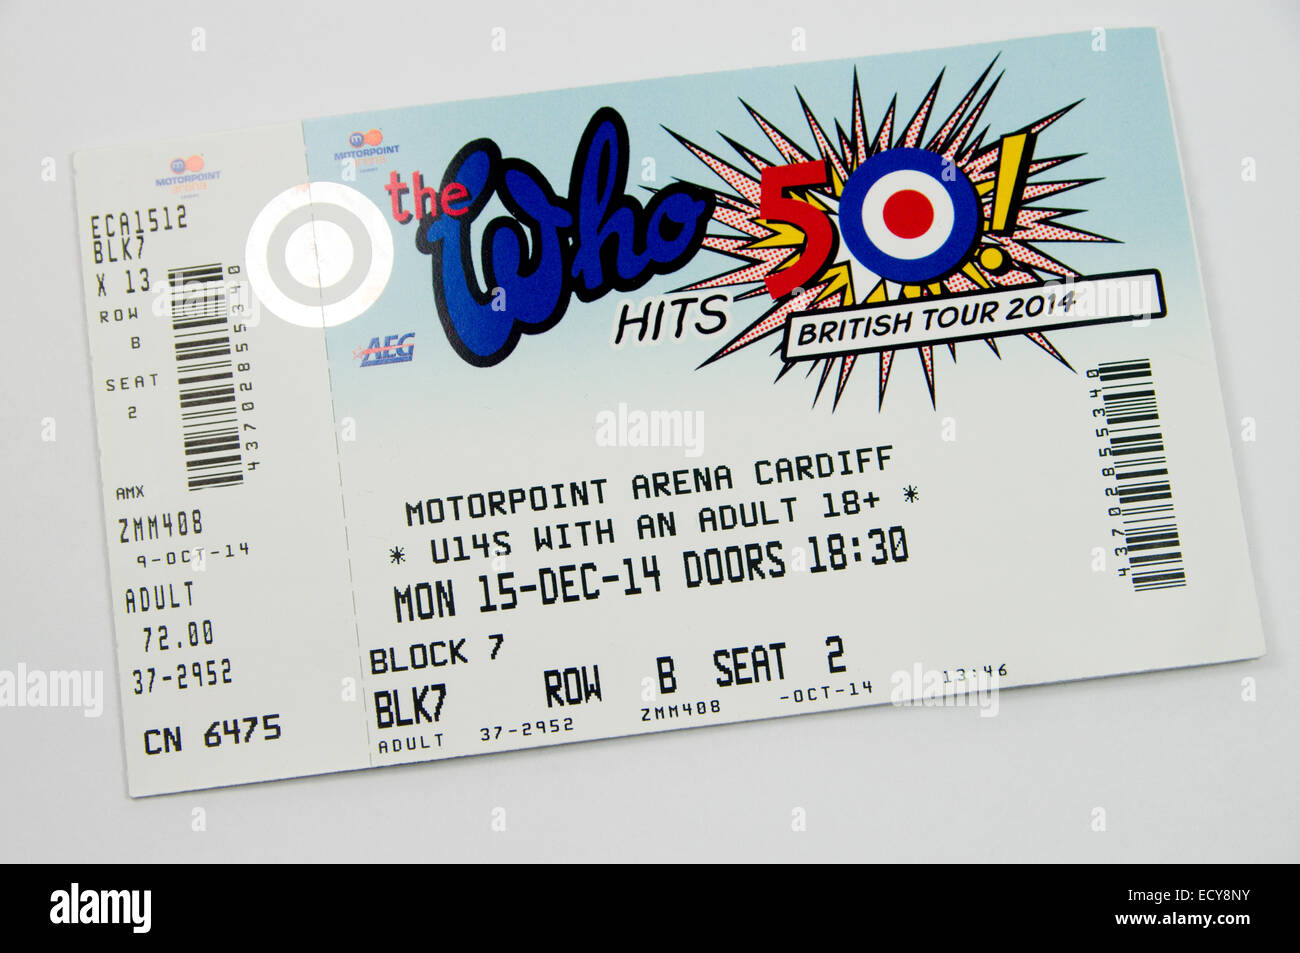 The Who 50 hits British Tour Ticket - Stock Image